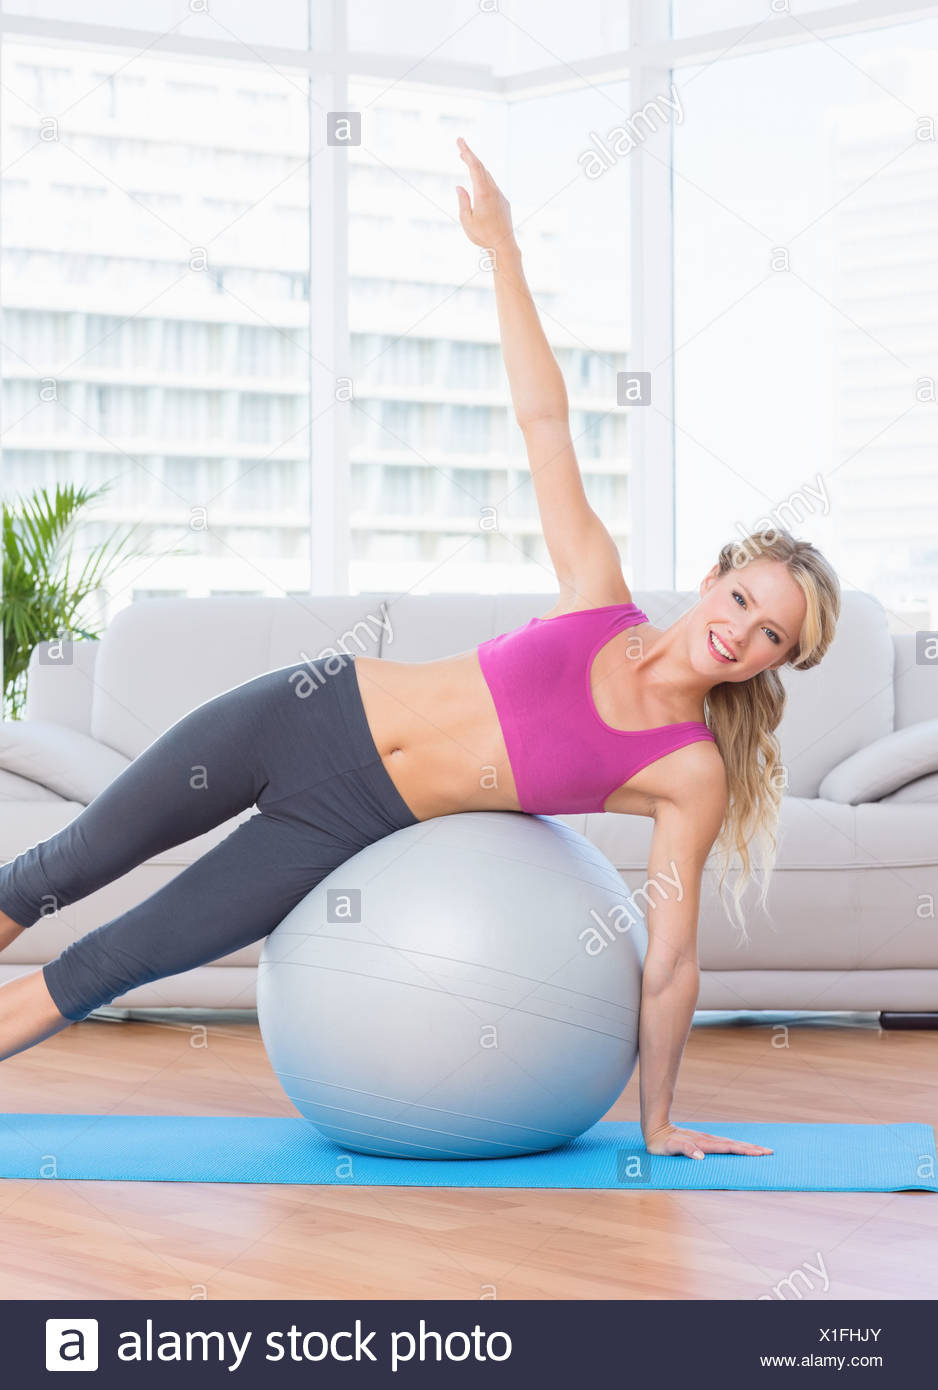 Happy fit blonde doing side plank with exercise ball - Stock Image